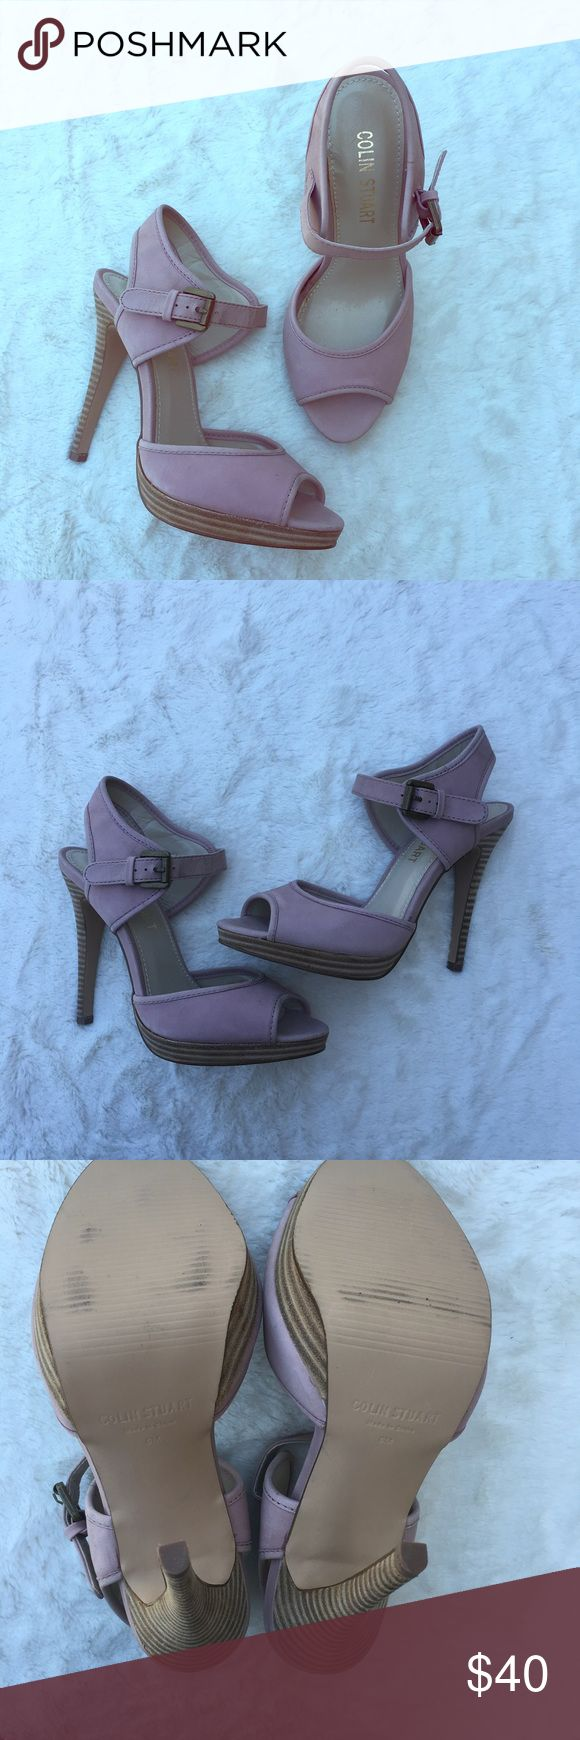 Colin Stuart light pink heels Colin Stuart light pink upper leather heels. Open toe, buckle around ankle. Like new! In great condition! Feel free to ask questions or make an offer 💕 Colin Stuart Shoes Heels